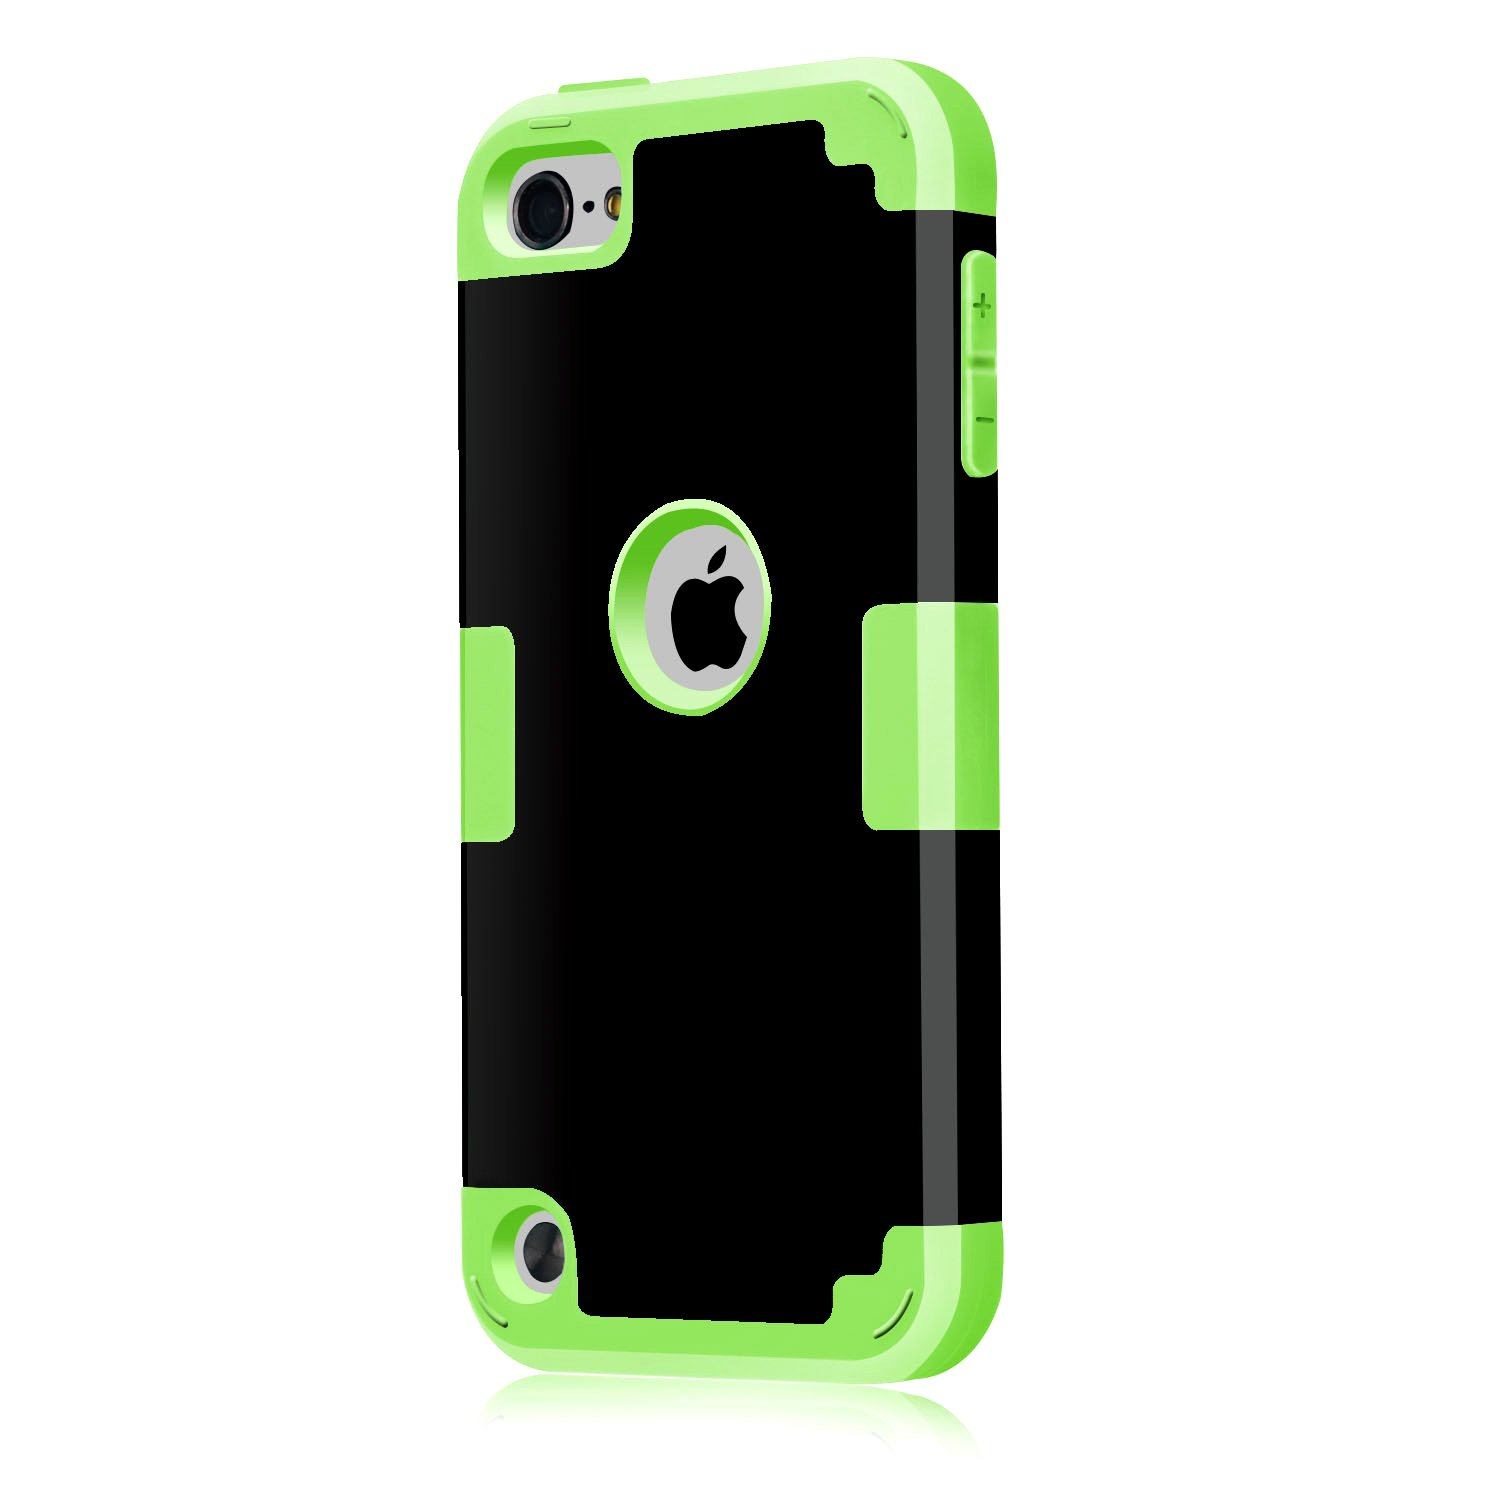 Case for iPod Touch 5 6 7 Case CheerShare 3 in 1 Hard PC Case Silicone Shockproof Heavy Duty High Impact Armor Case Cover Protective Case for Apple iPod Touch 2019 New White+Blue